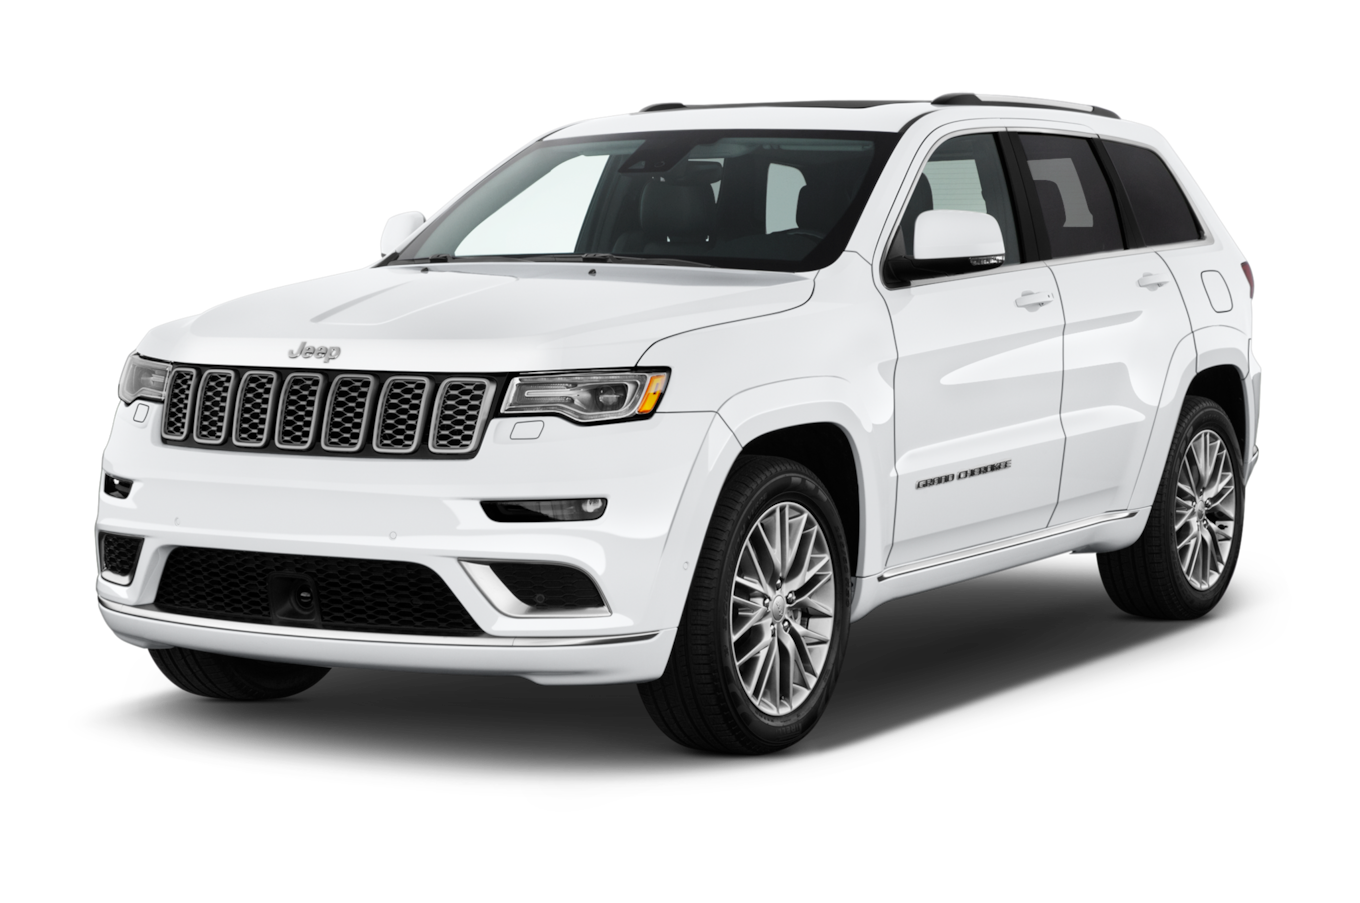 95 A Jeep Grand Cherokee Specs and Review